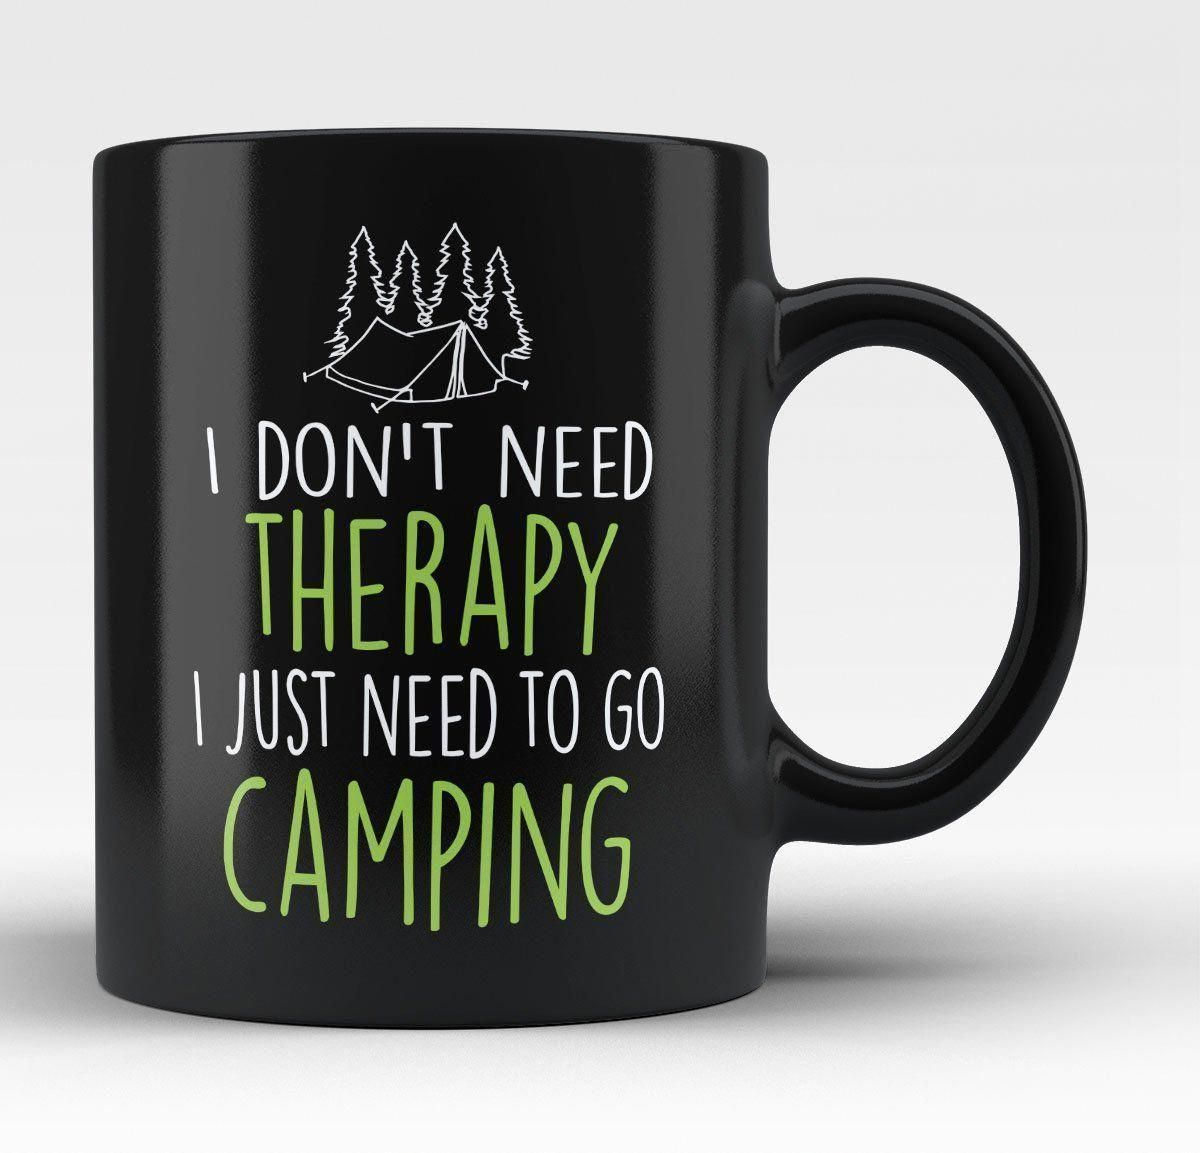 Only 500 Available Gt This Amazing Camping Gear Cute For